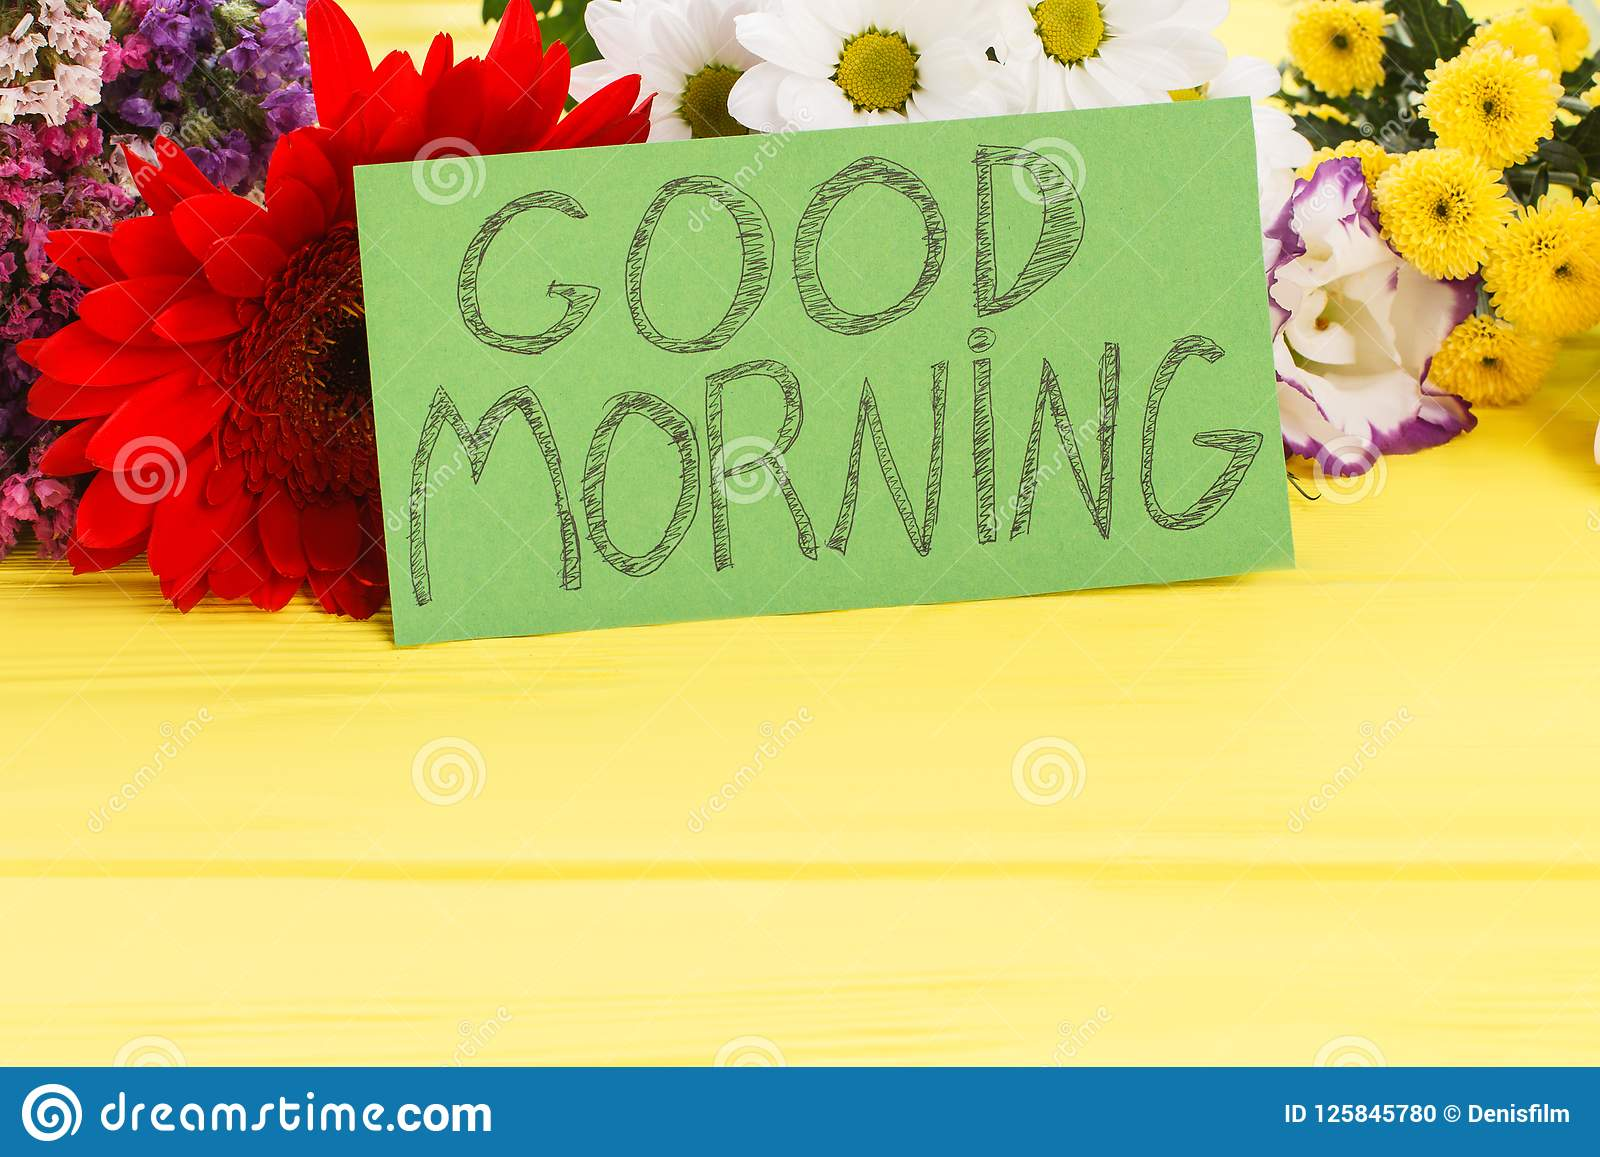 Good Morning Wish Note And Beautiful Flowers Stock Photo Image Of